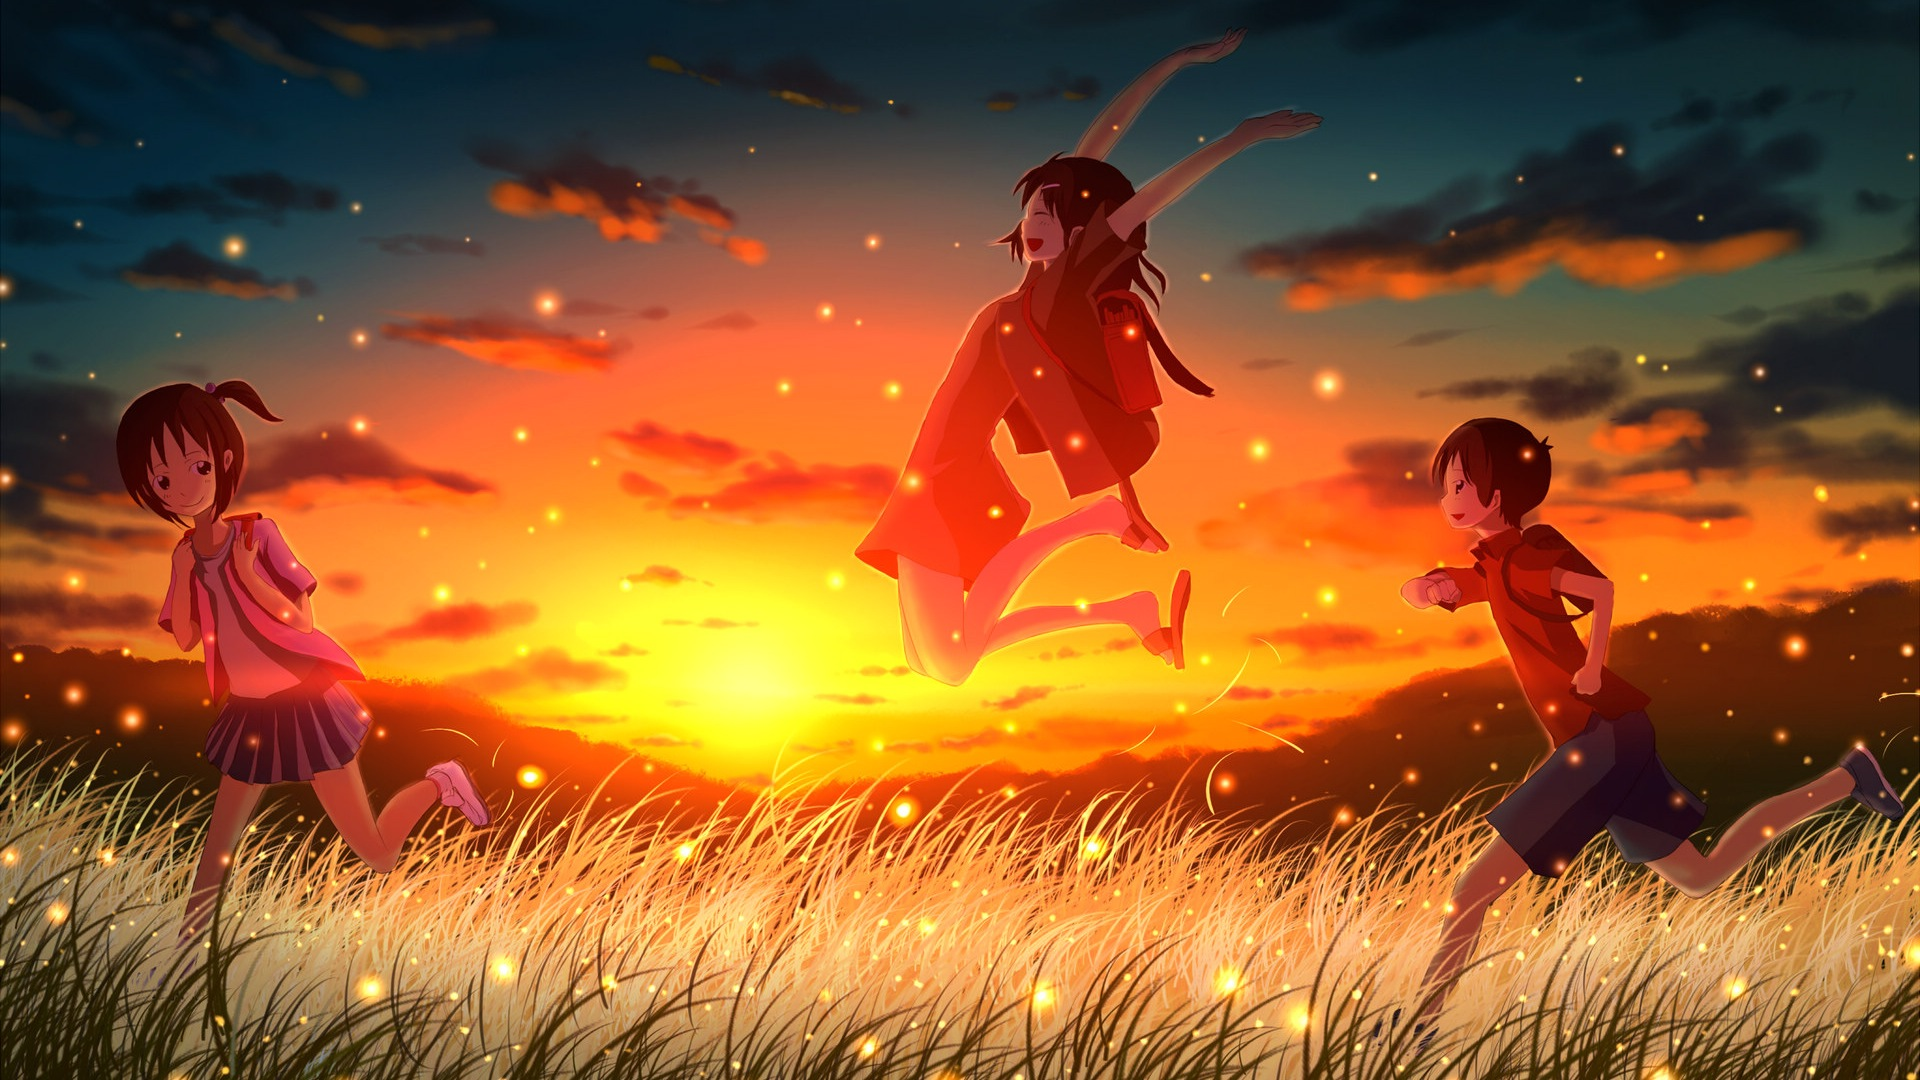 Firefly Summer beautiful anime wallpaper #1 - 1920x1080 ...